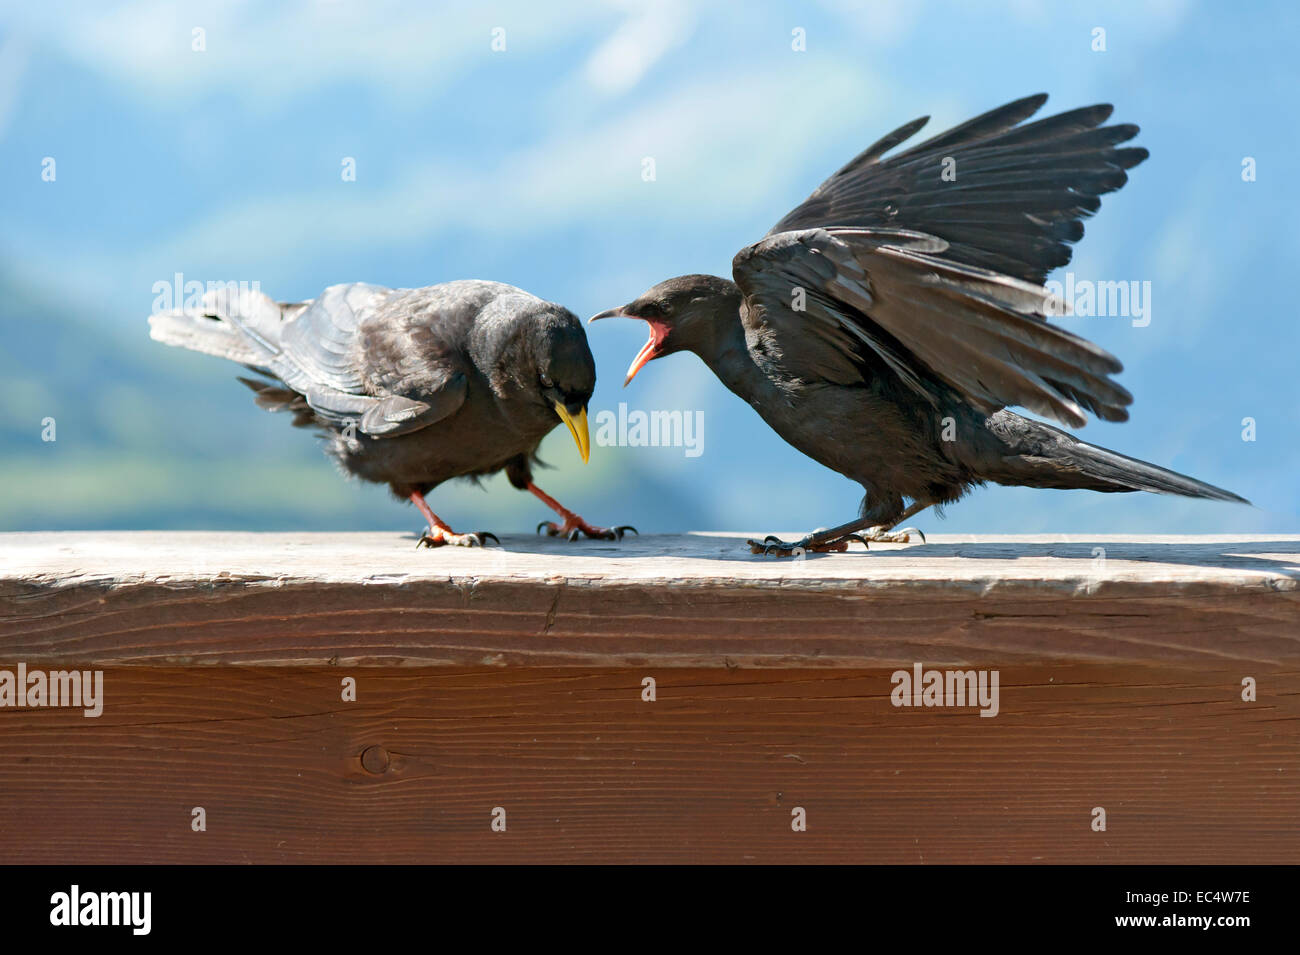 2 alpine choughs in dispute - Stock Image